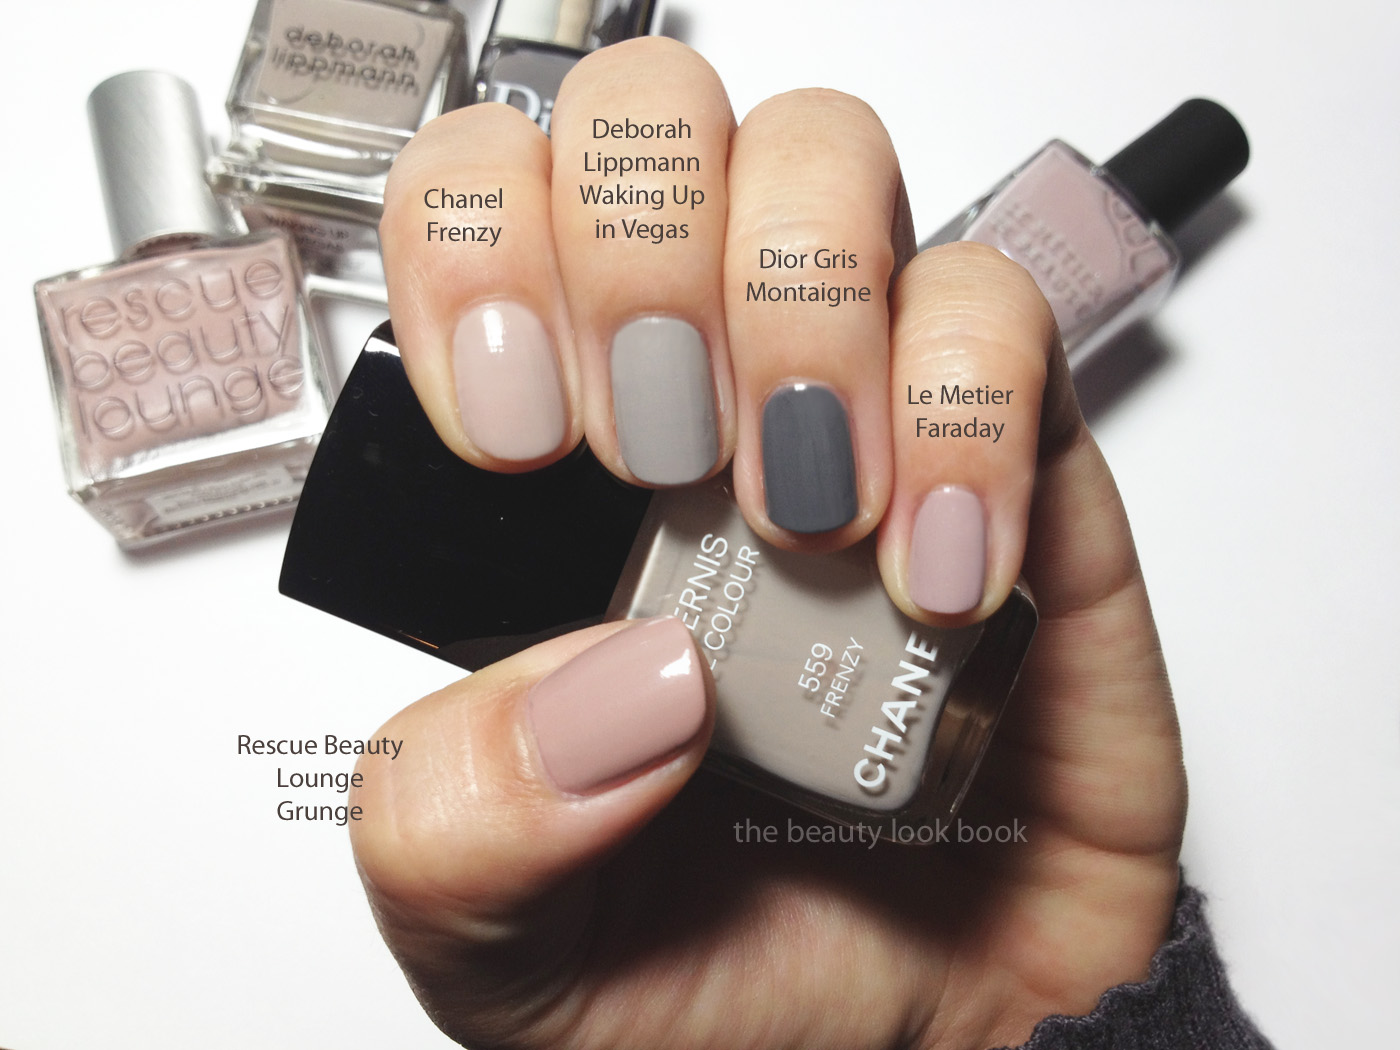 Chanel Frenzy 559 Le Vernis Fall 2012 The Beauty Look Book